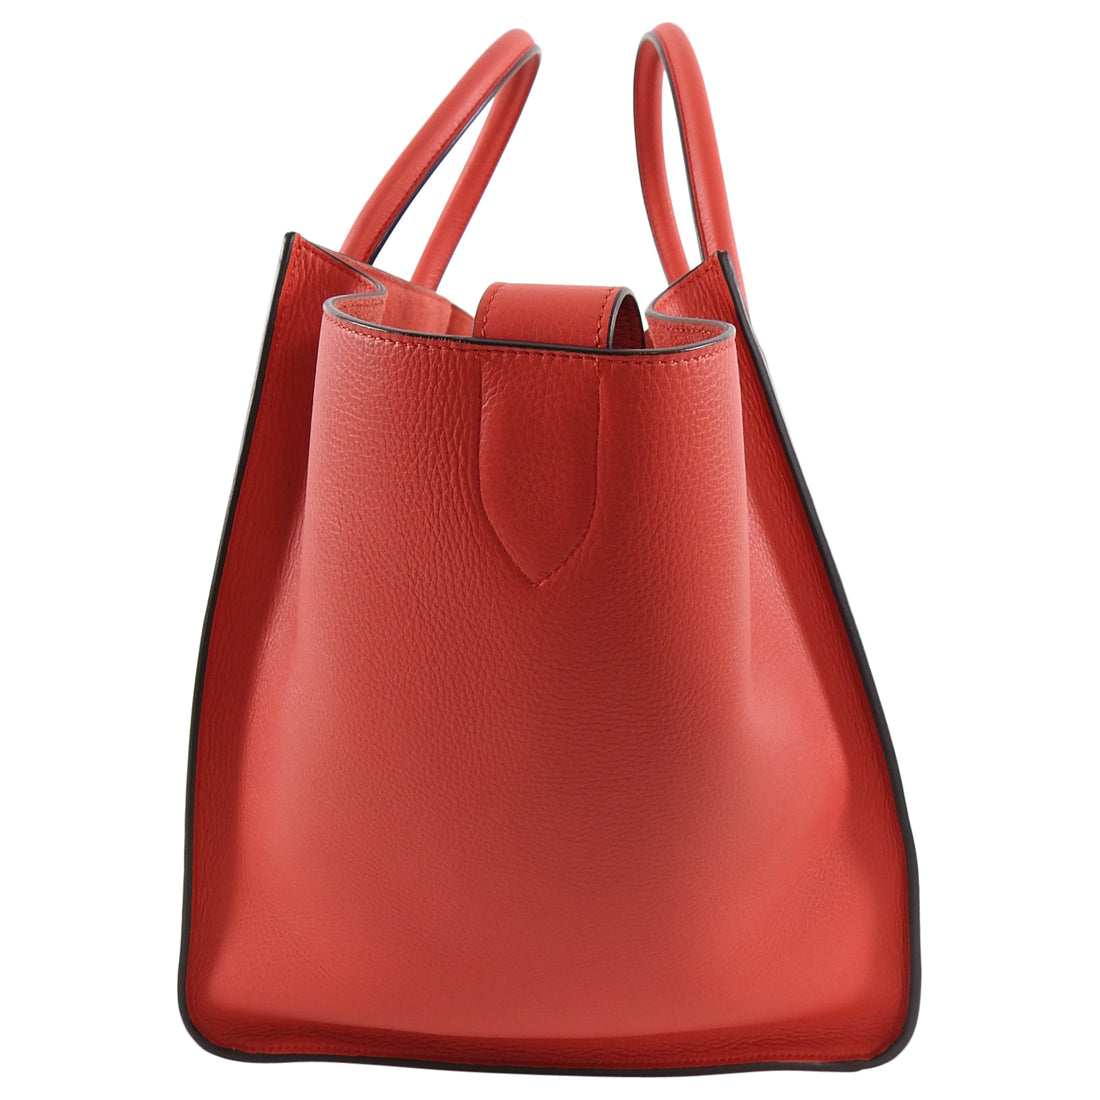 Celine Red Medium Phantom Tote Bag New